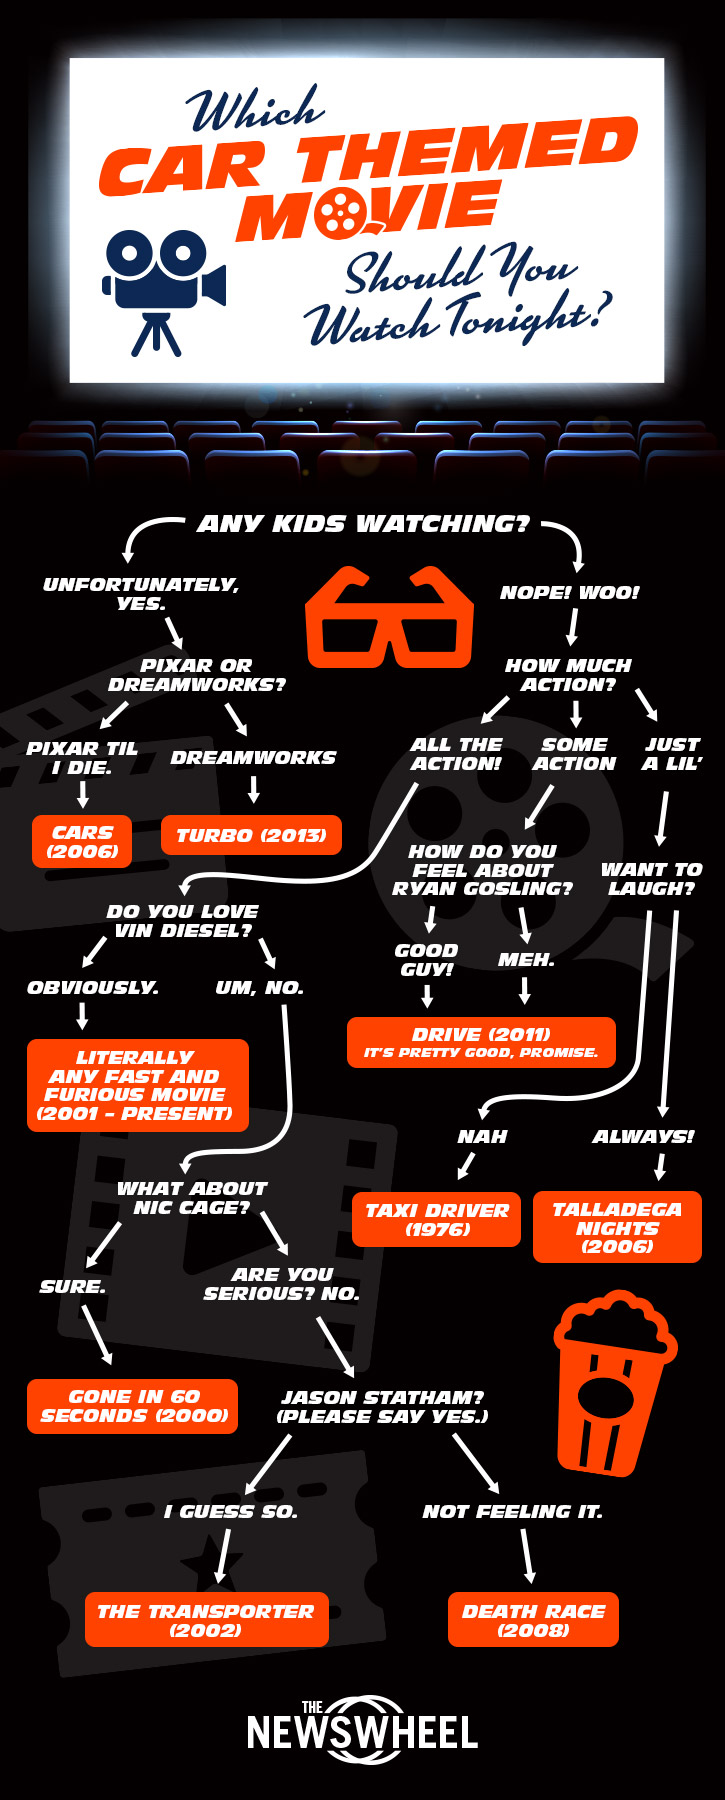 Which Car Themed Movie Should You Watch Tonight Infographic